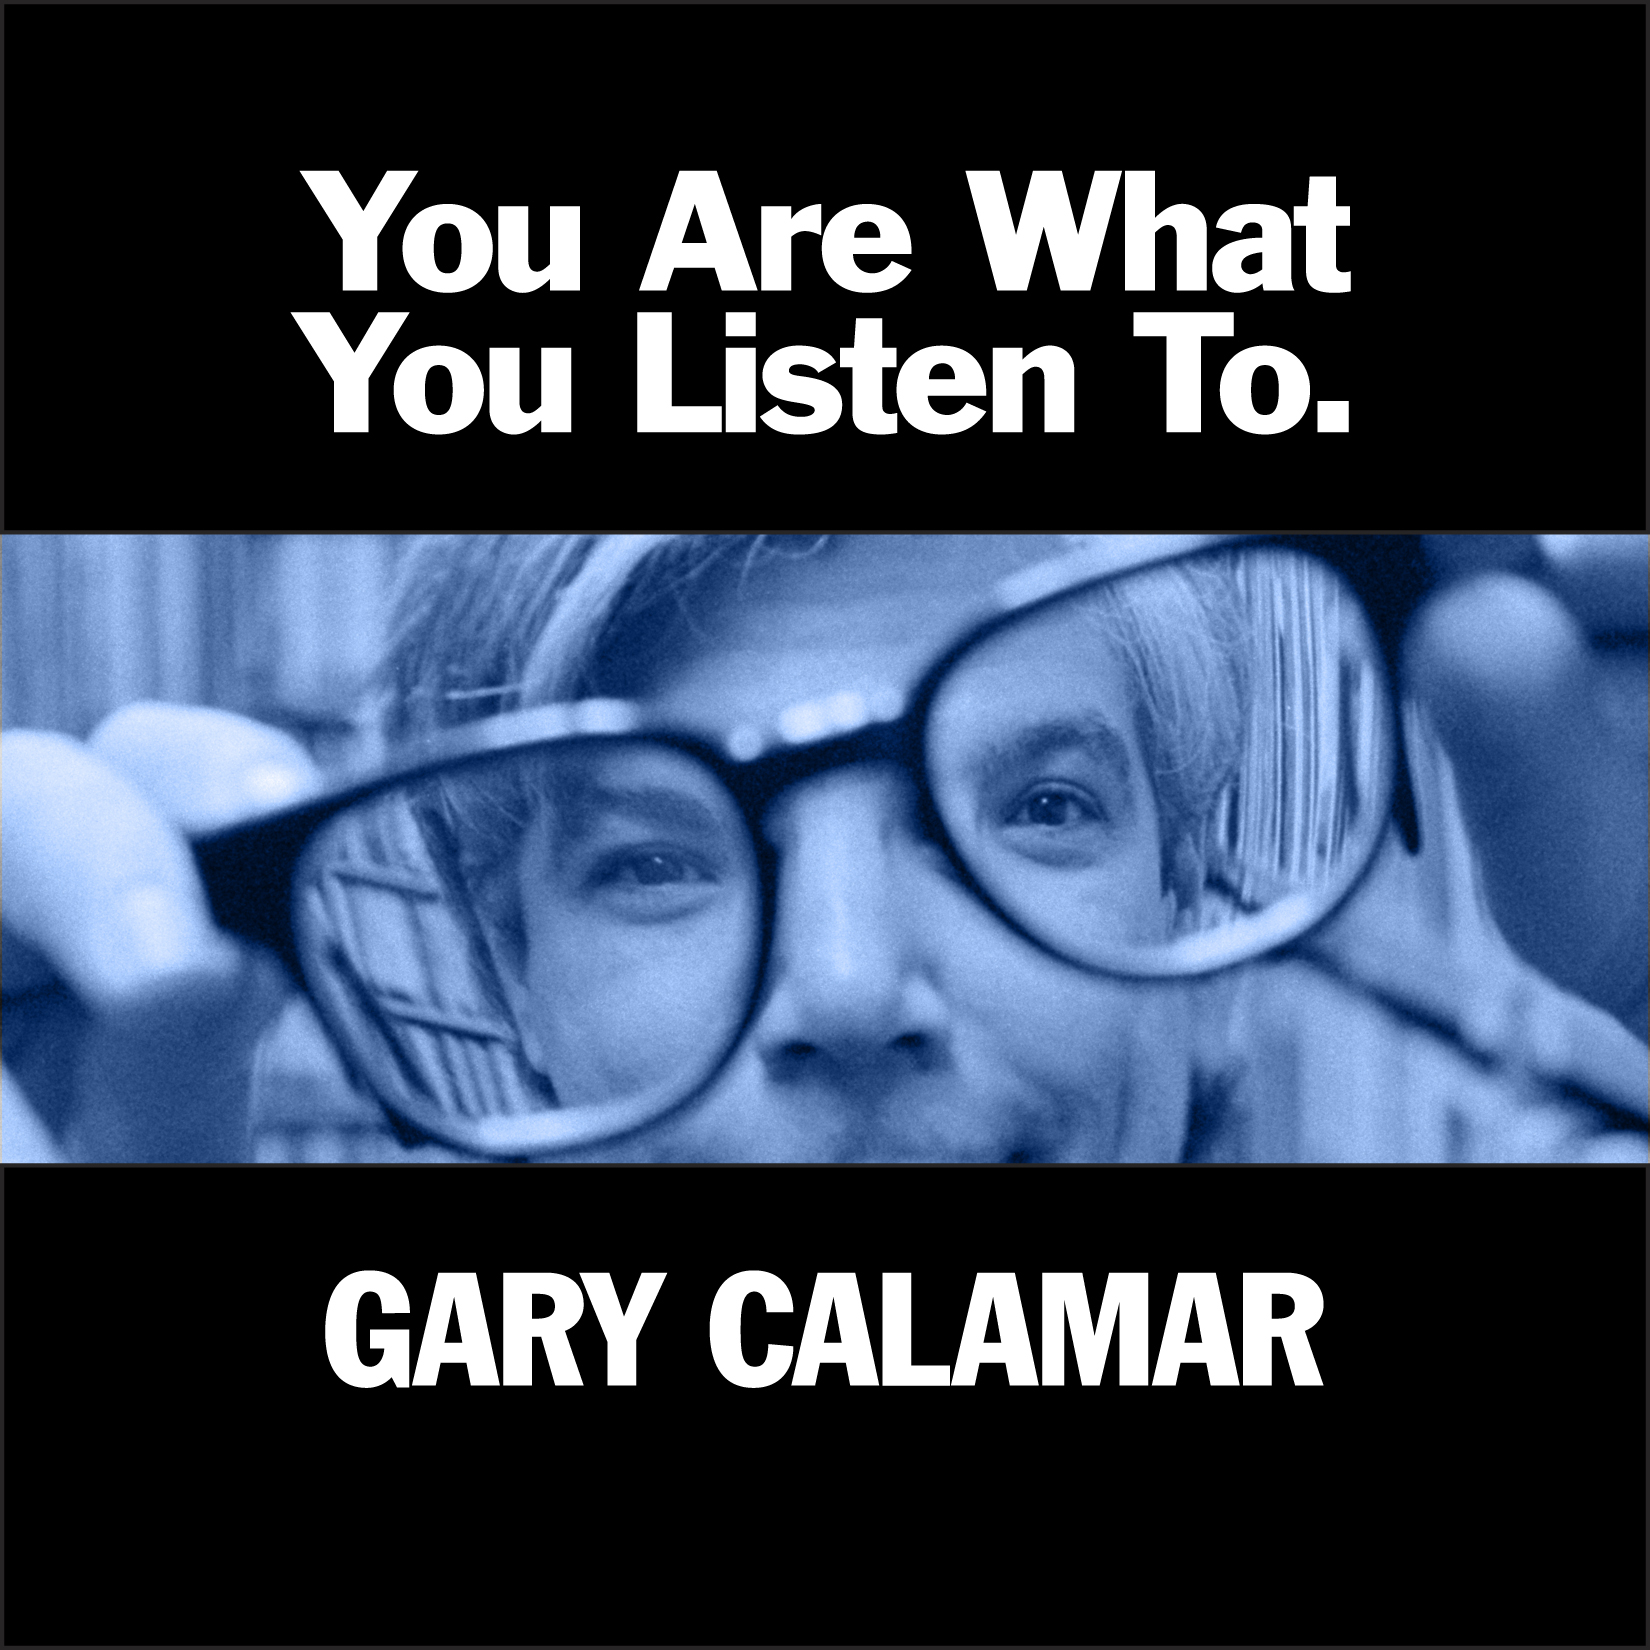 MUSIC NEWS REMINDER: GARY CALAMAR'S ATLANTIC RECORDS DEBUT OUT TODAY!